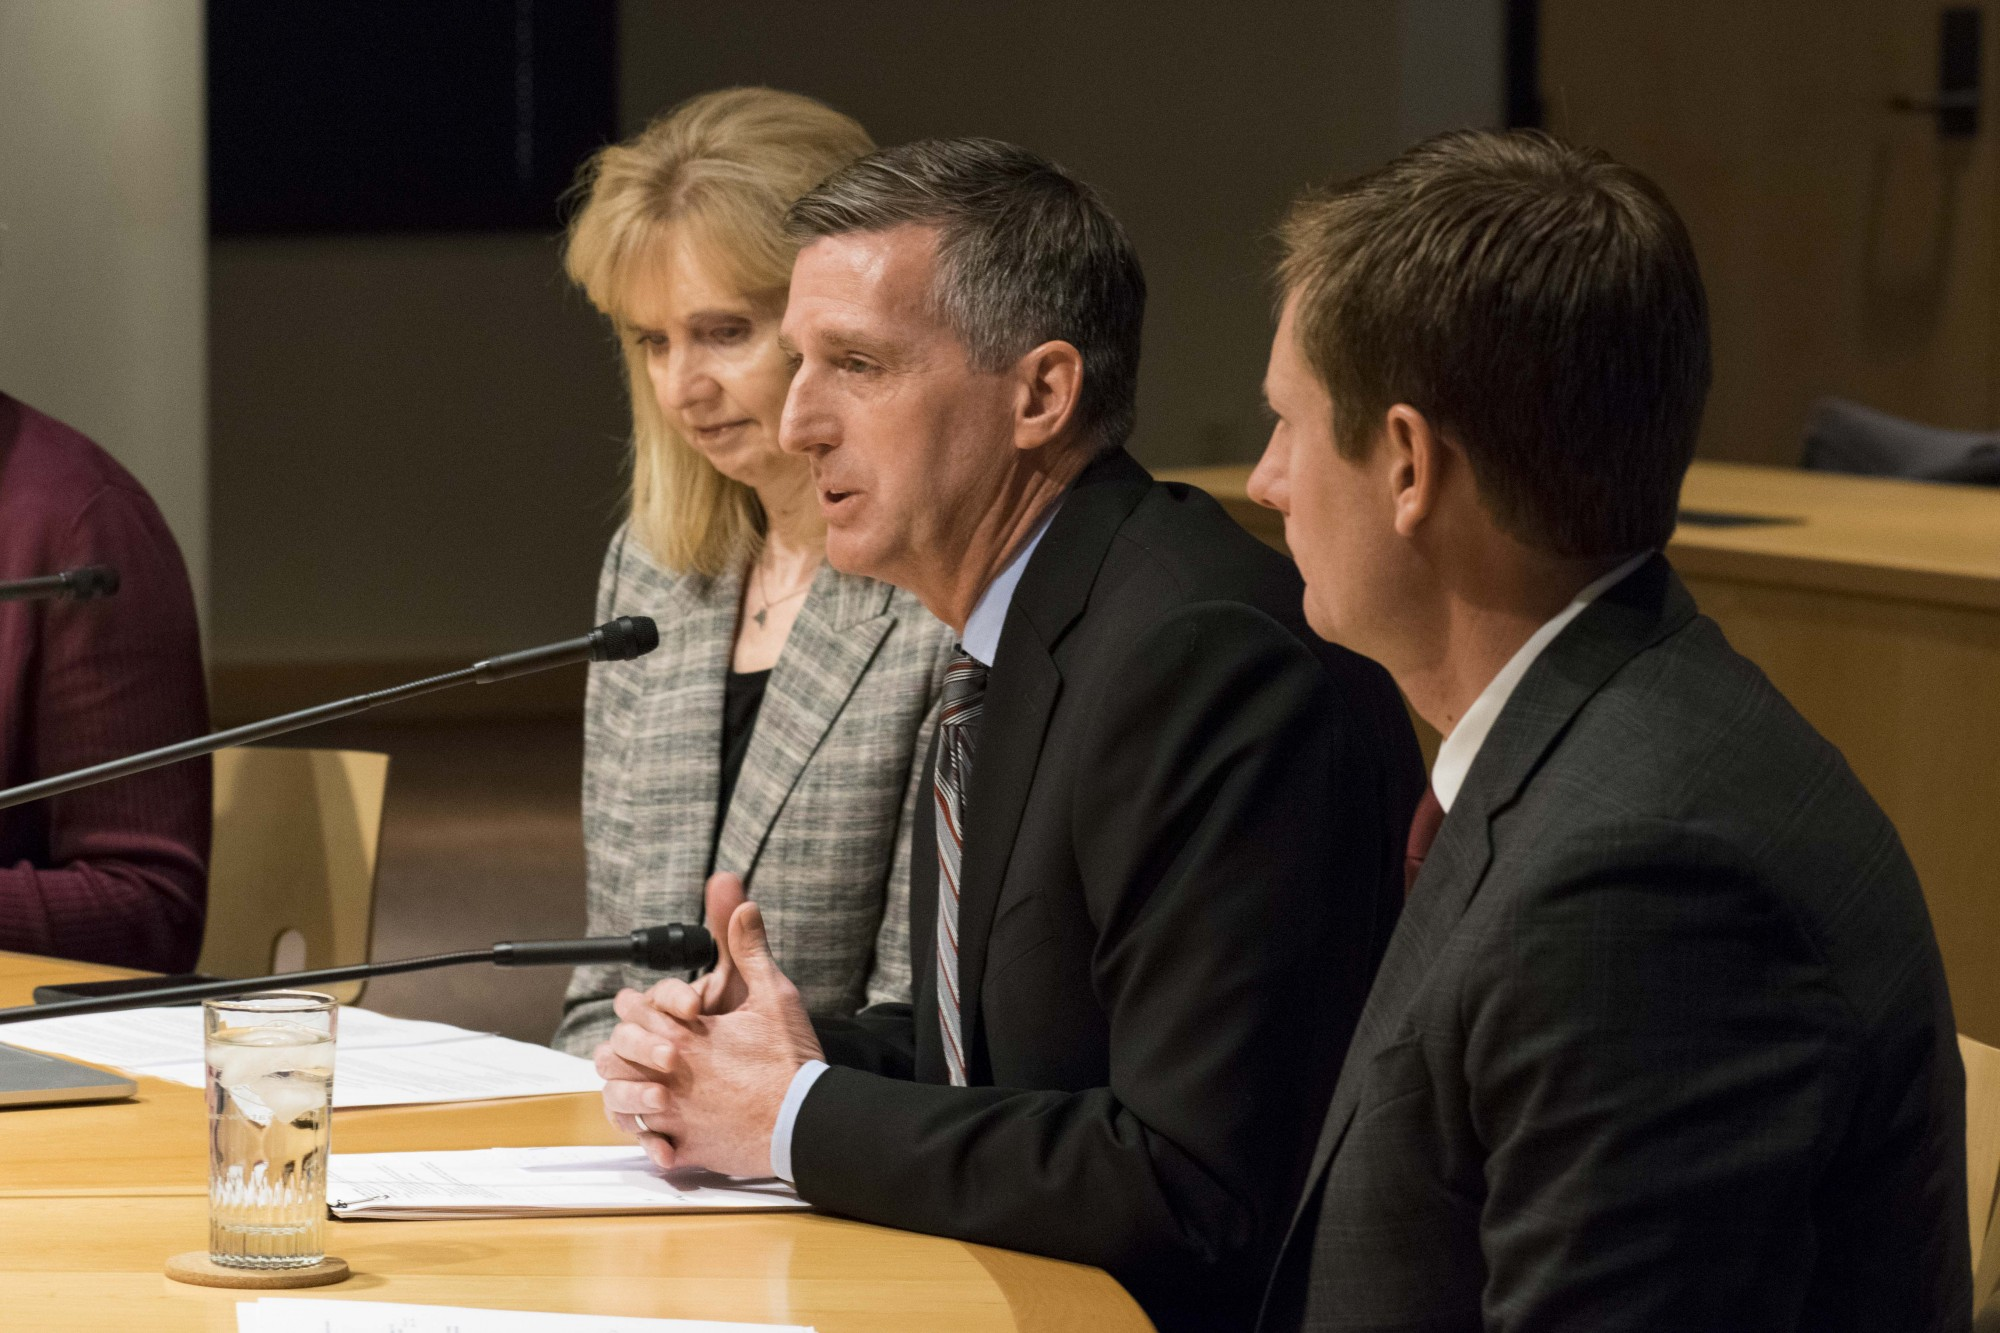 Athletic Director Mark Coyle addresses the Board of Regents in regards to a contract extension signed by head football coach P.J. Fleck at the McNamara Alumni Center on Thursday, Nov. 14, 2019. The deal, signed by Fleck last week, extends his contract through the 2026 season and will increase his base salary to $4.6 million.